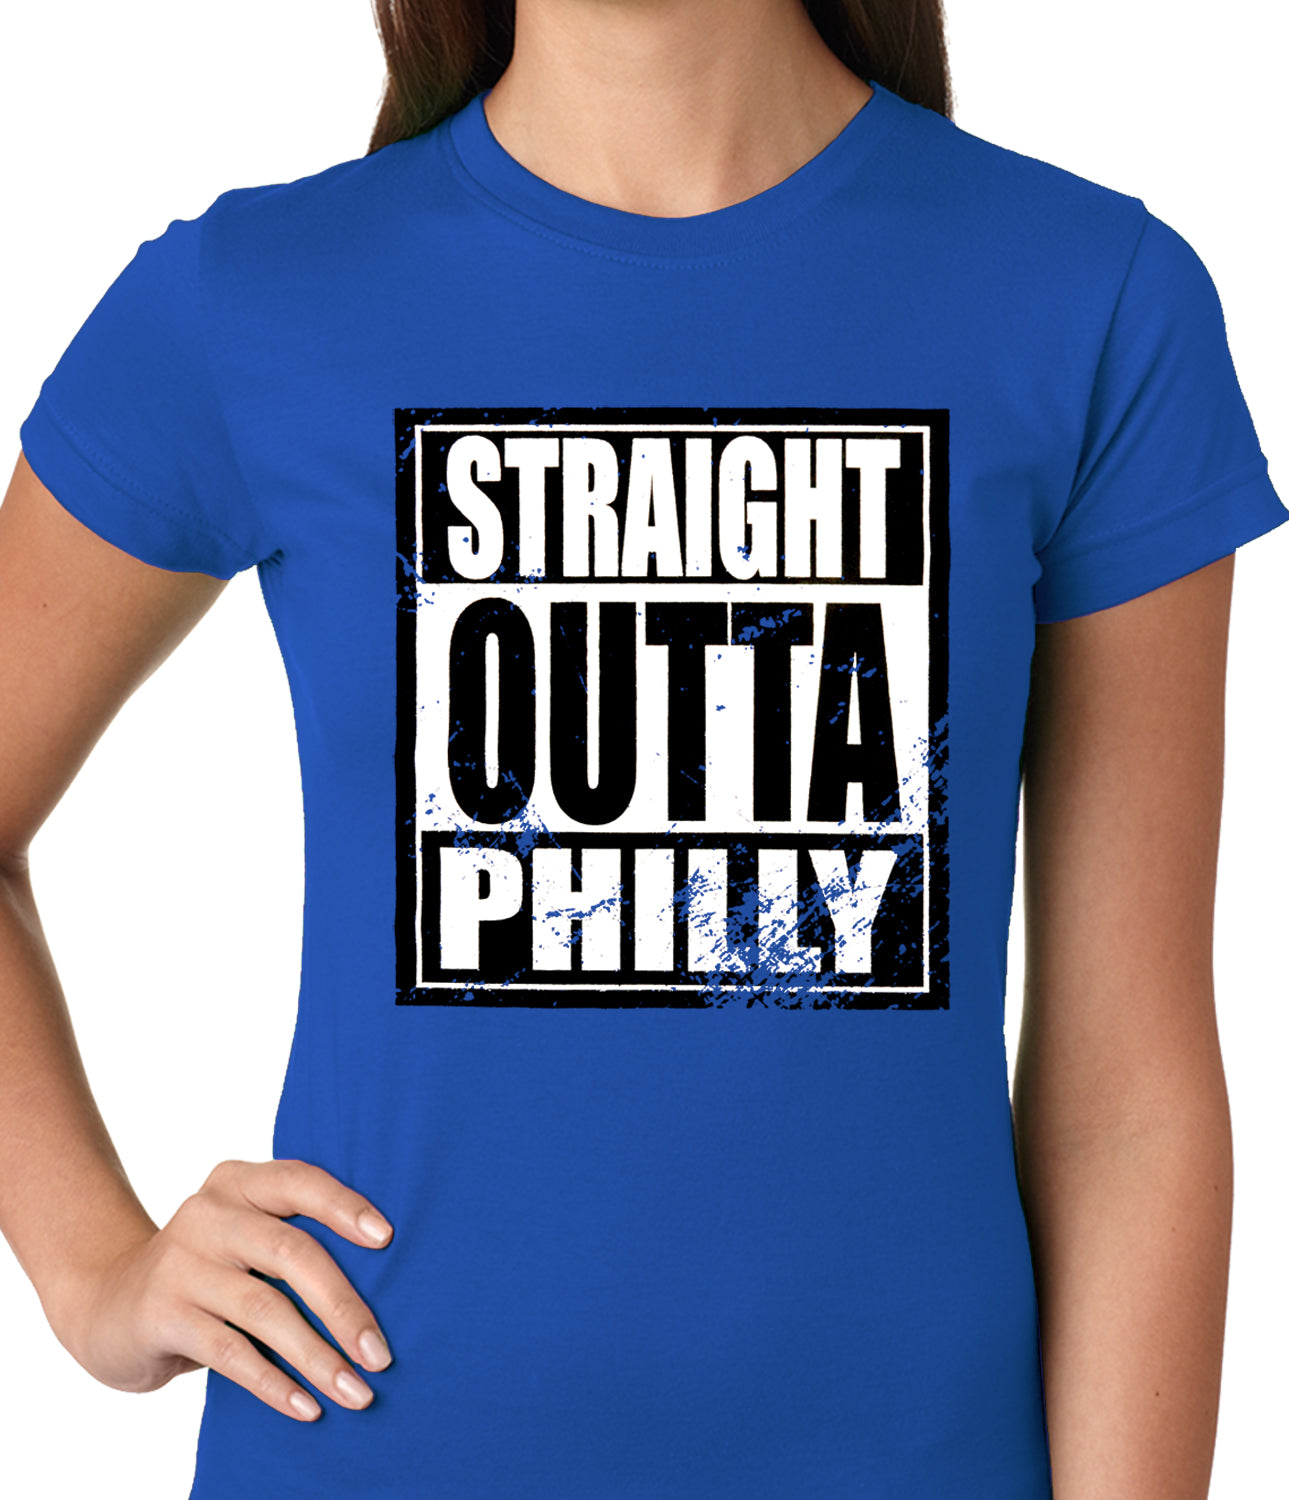 Straight Outta Philly Ladies T-shirt